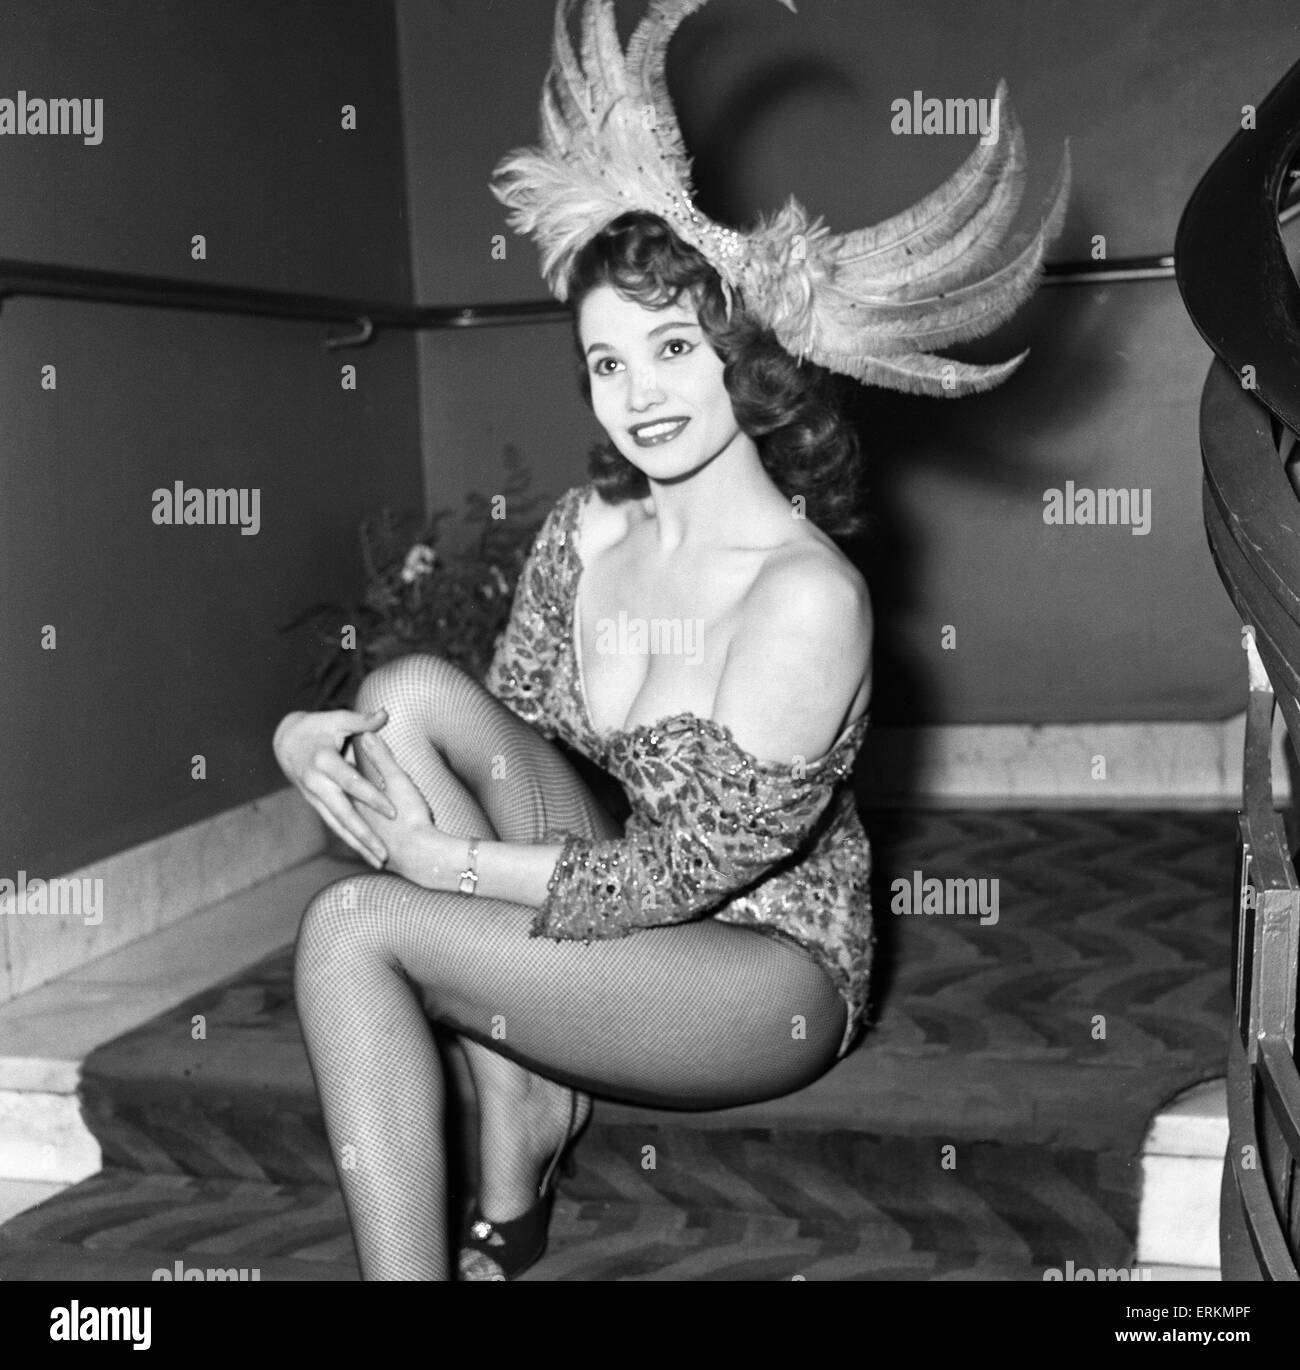 Premiere of Cowboy at Odeon Leicester Square. Actress Yvonne Buckingham, aged 19. 24th January 1958. - Stock Image